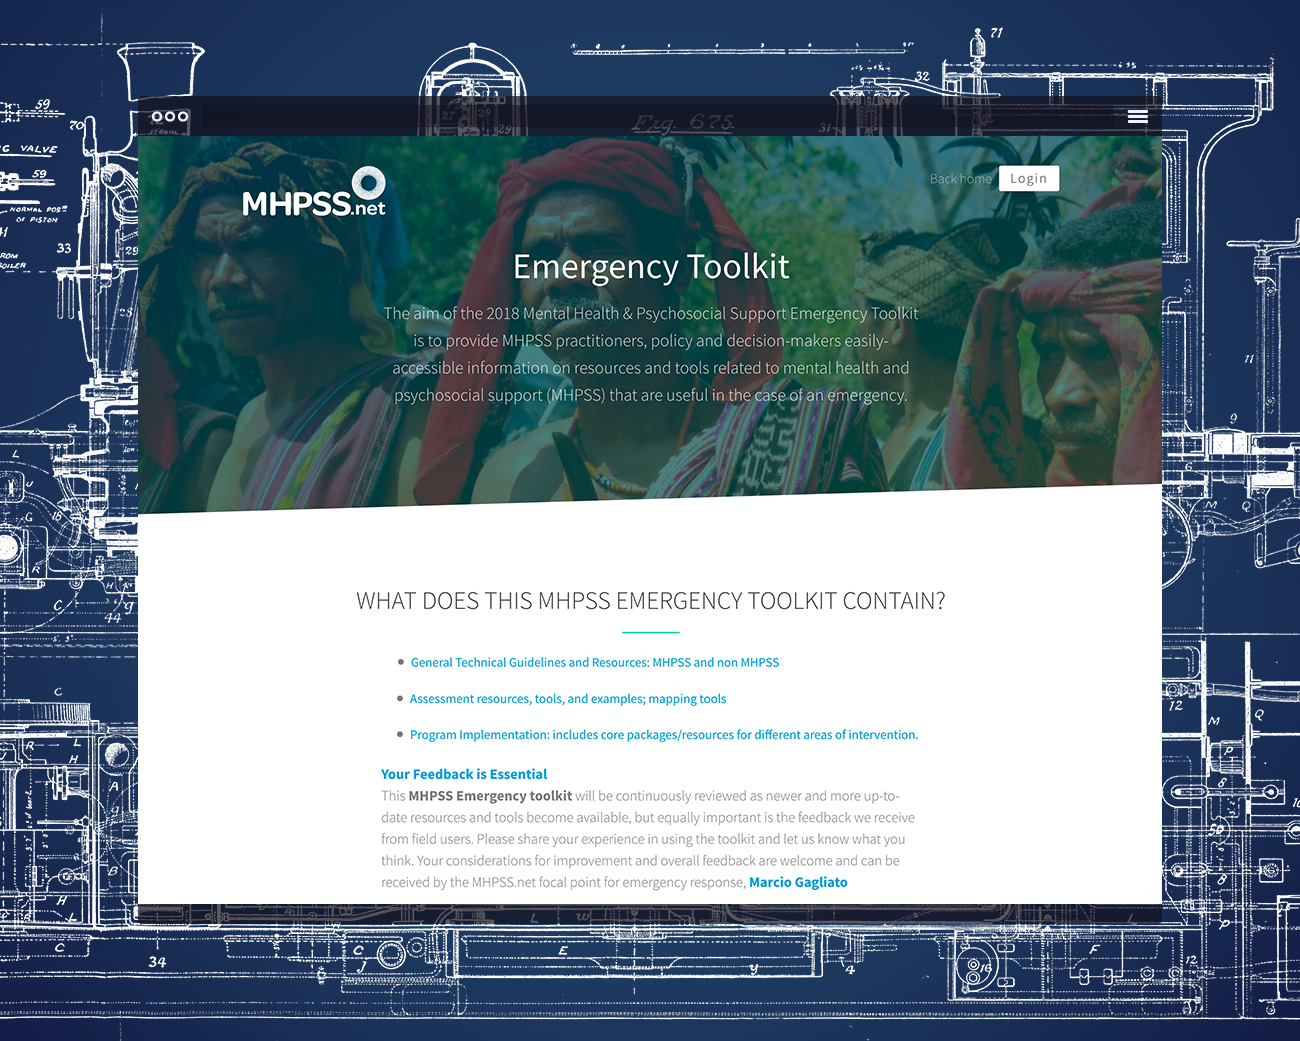 MHPSS - emergency toolkit